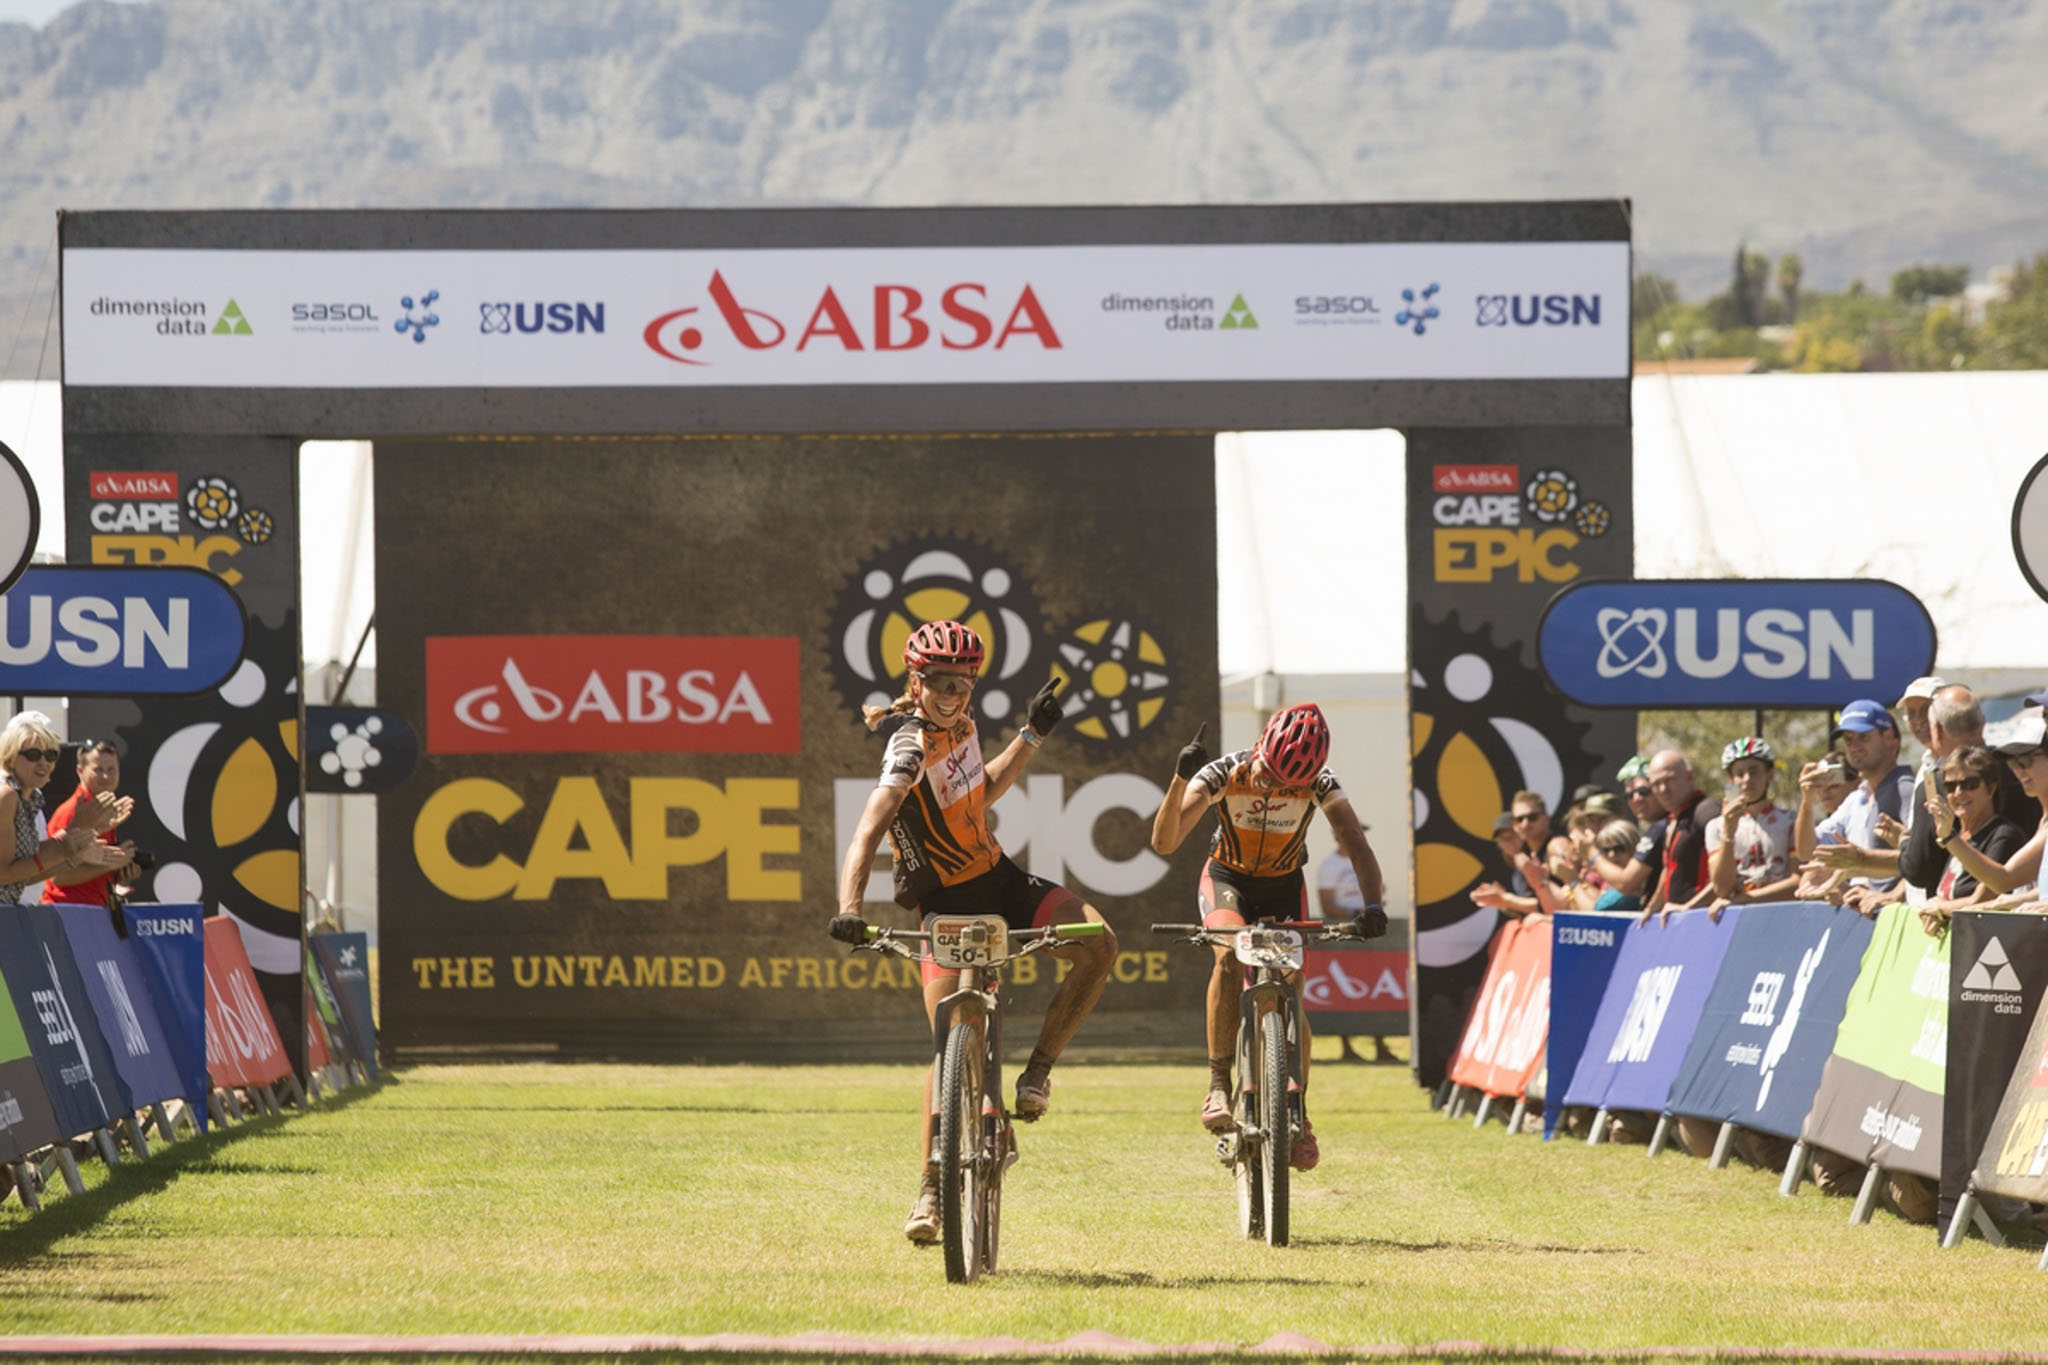 Ariane Kleinhans (R) and Annika Langvad (L) Win stage 3 of the 2016 Absa Cape Epic Mountain Bike stage race held from Saronsberg Wine Estate in Tulbagh to the Cape Peninsula University of Technology in Wellington, South Africa on the 16th March 2016 Photo by Sam Clark/Cape Epic/SPORTZPICS PLEASE ENSURE THE APPROPRIATE CREDIT IS GIVEN TO THE PHOTOGRAPHER AND SPORTZPICS ALONG WITH THE ABSA CAPE EPIC ace2016